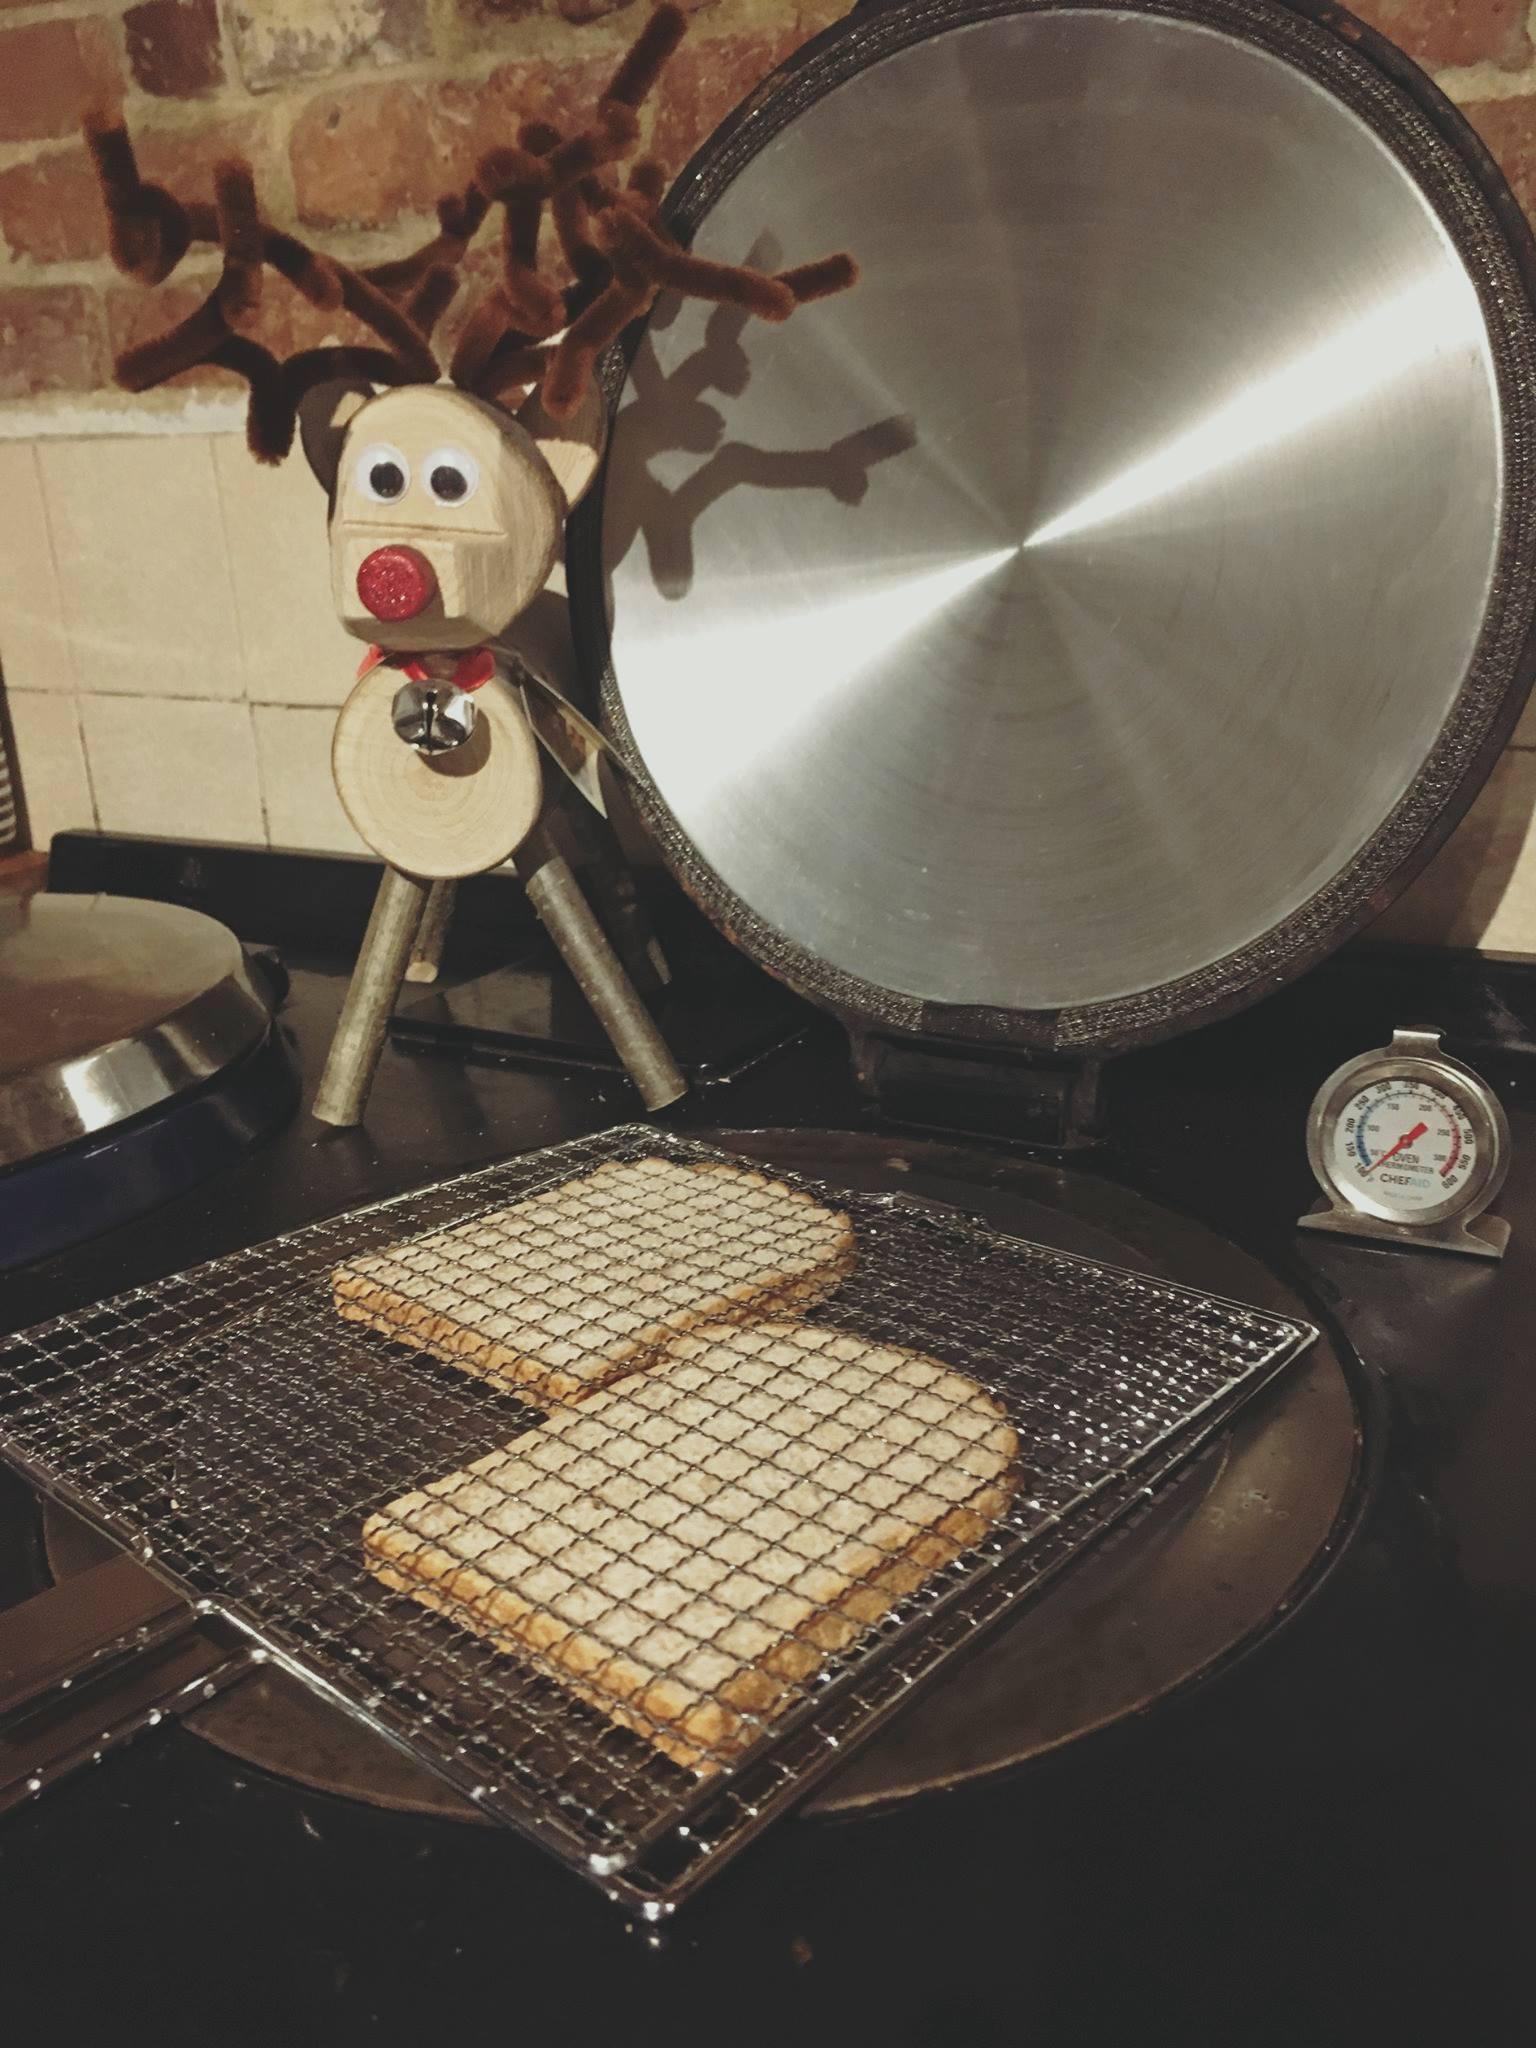 Toast being made on Aga range cooker